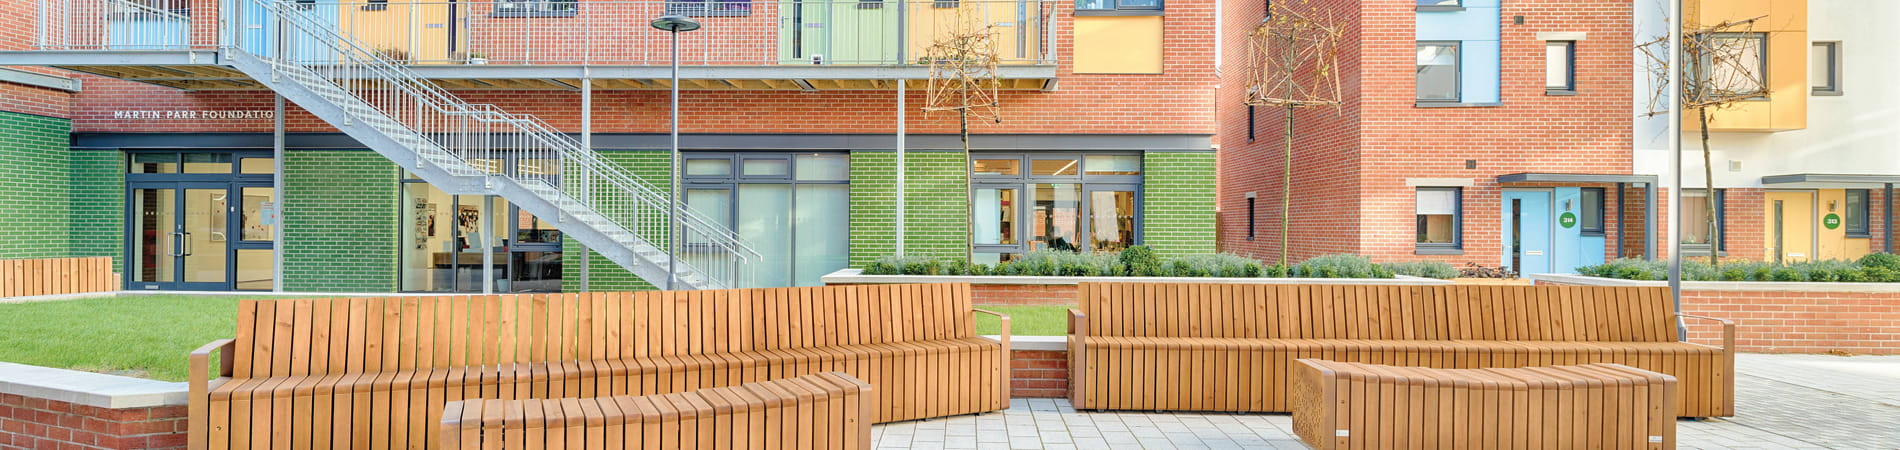 Marshalls Landscape Protection moves to FSC®-certified wood